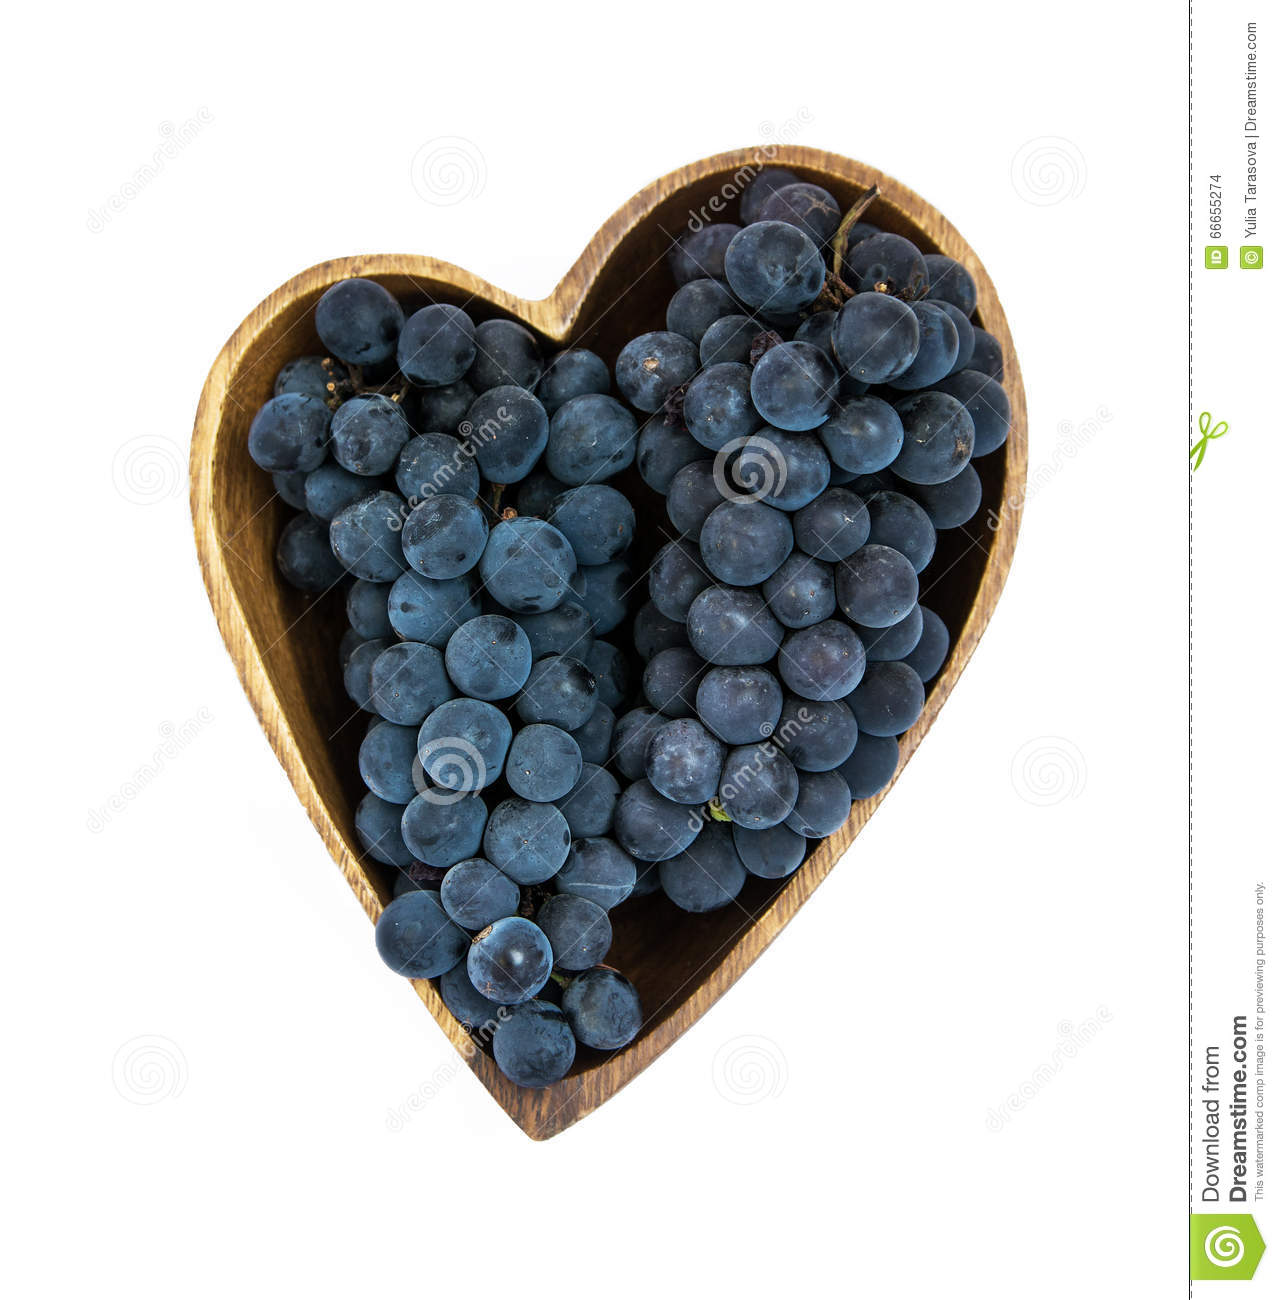 Grapes in a heart shape wooden plate